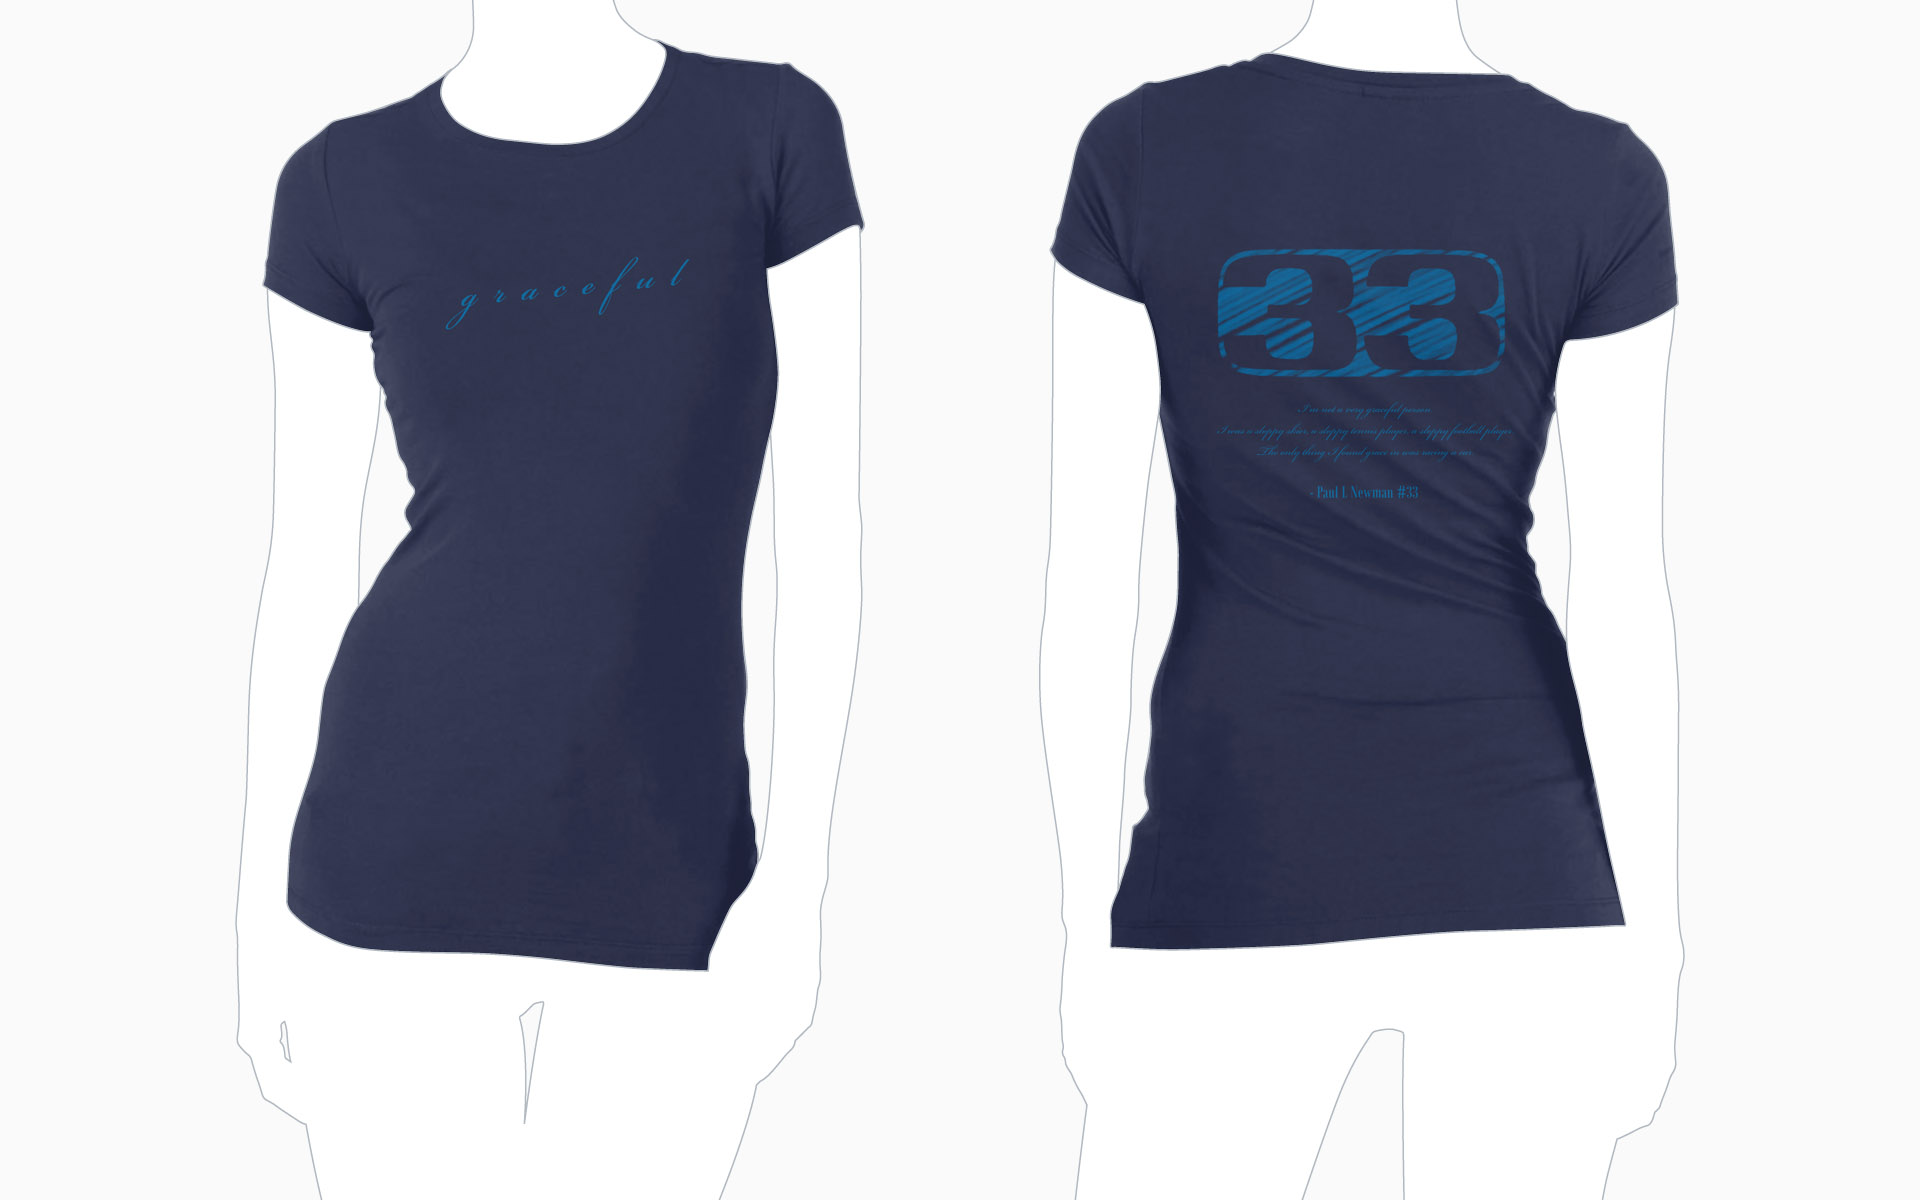 Lime Rock Park 57th Anniversary T-Shirt